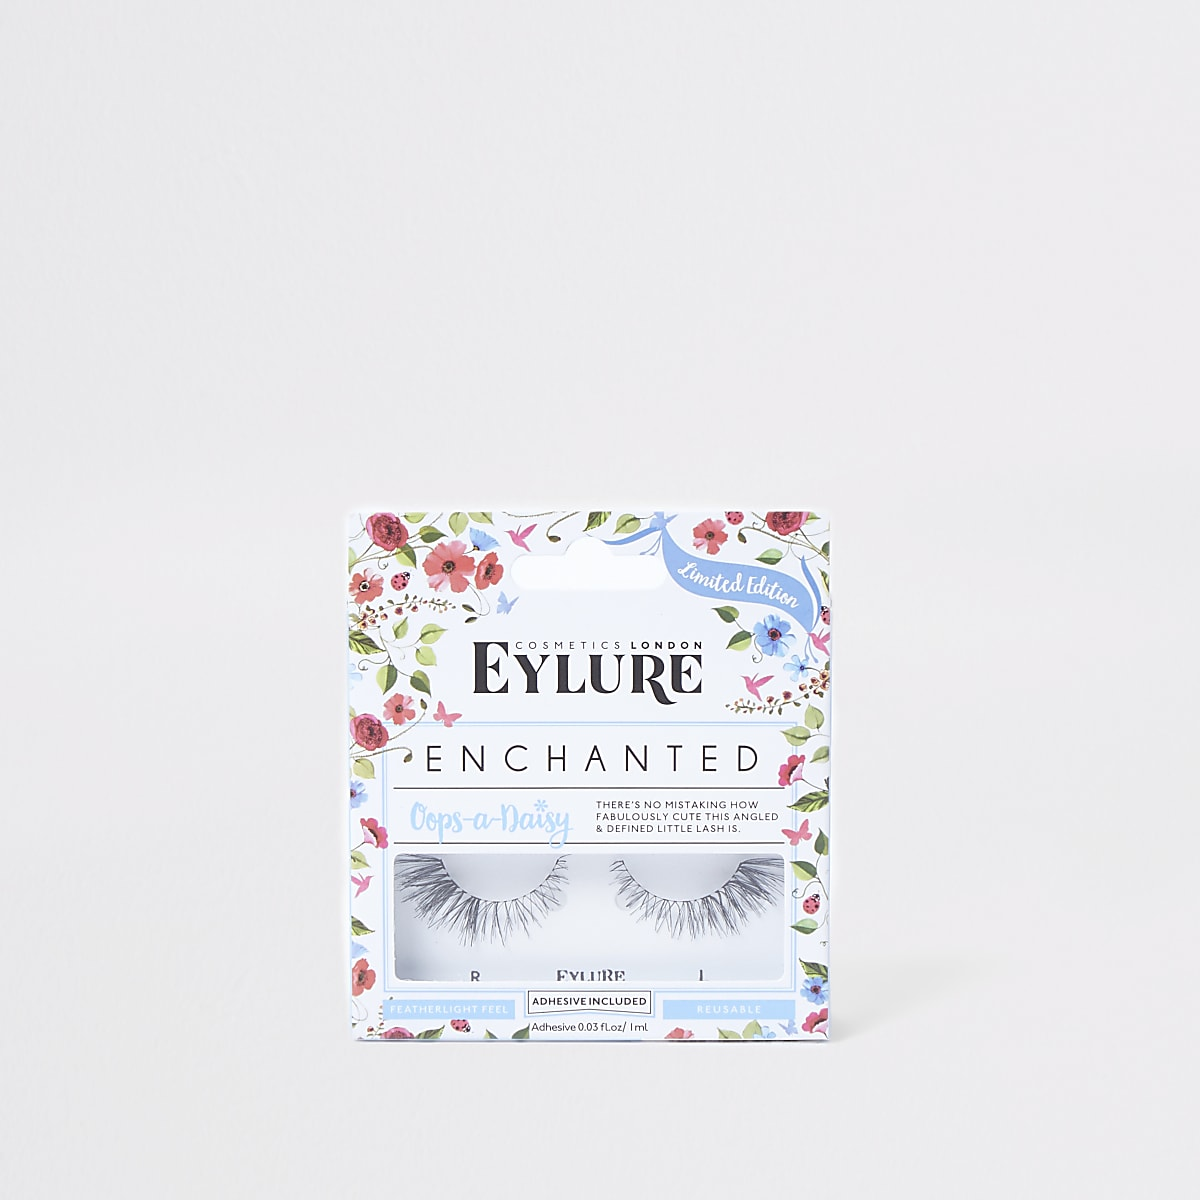 Eylure – Oops-a-daisy – Faux cils